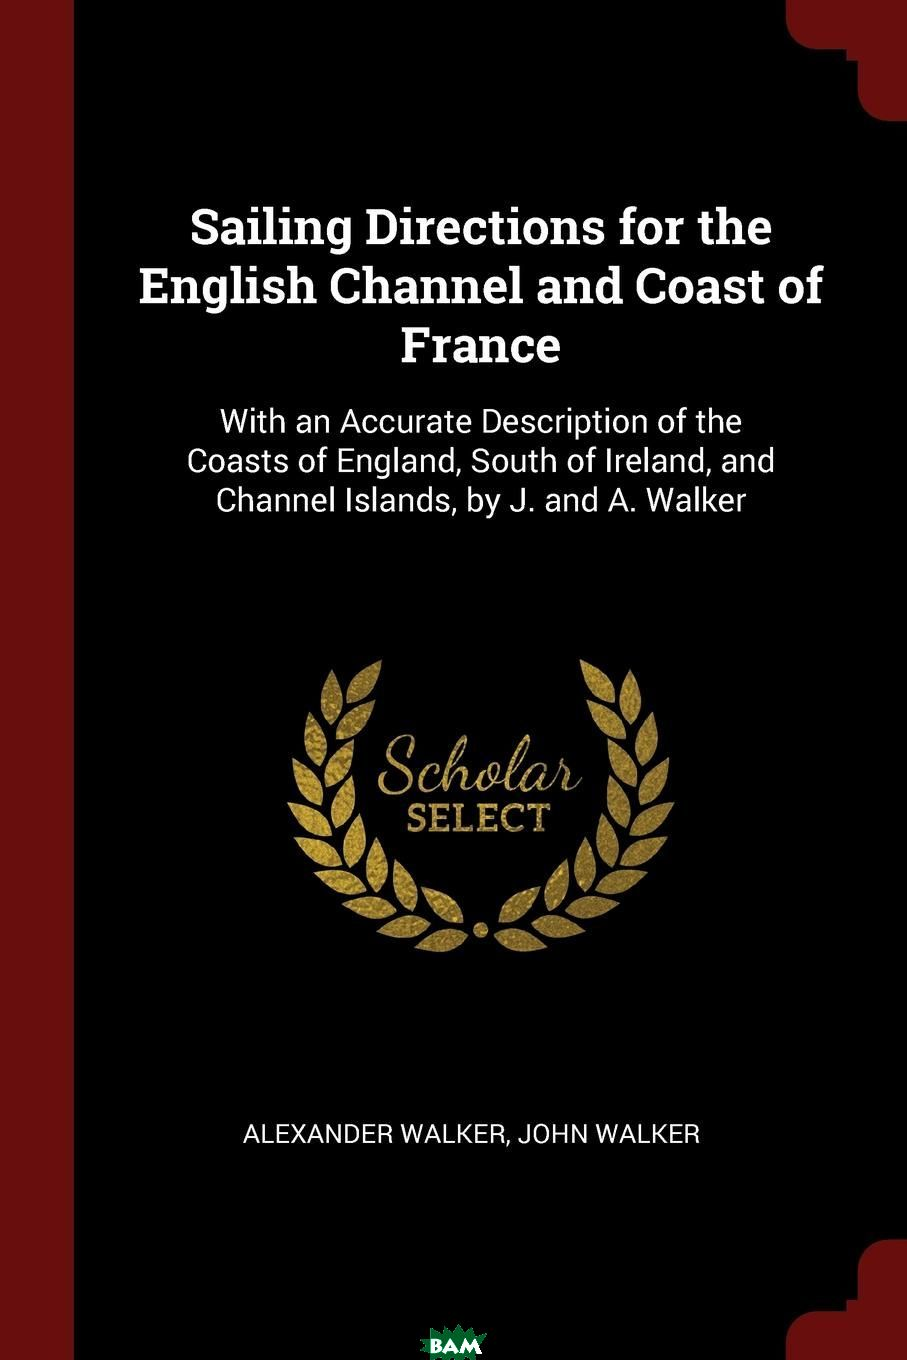 Sailing Directions for the English Channel and Coast of France. With an Accurate Description of the Coasts of England, South of Ireland, and Channel Islands, by J. and A. Walker, Alexander Walker, John Walker, 9781375747738  - купить со скидкой